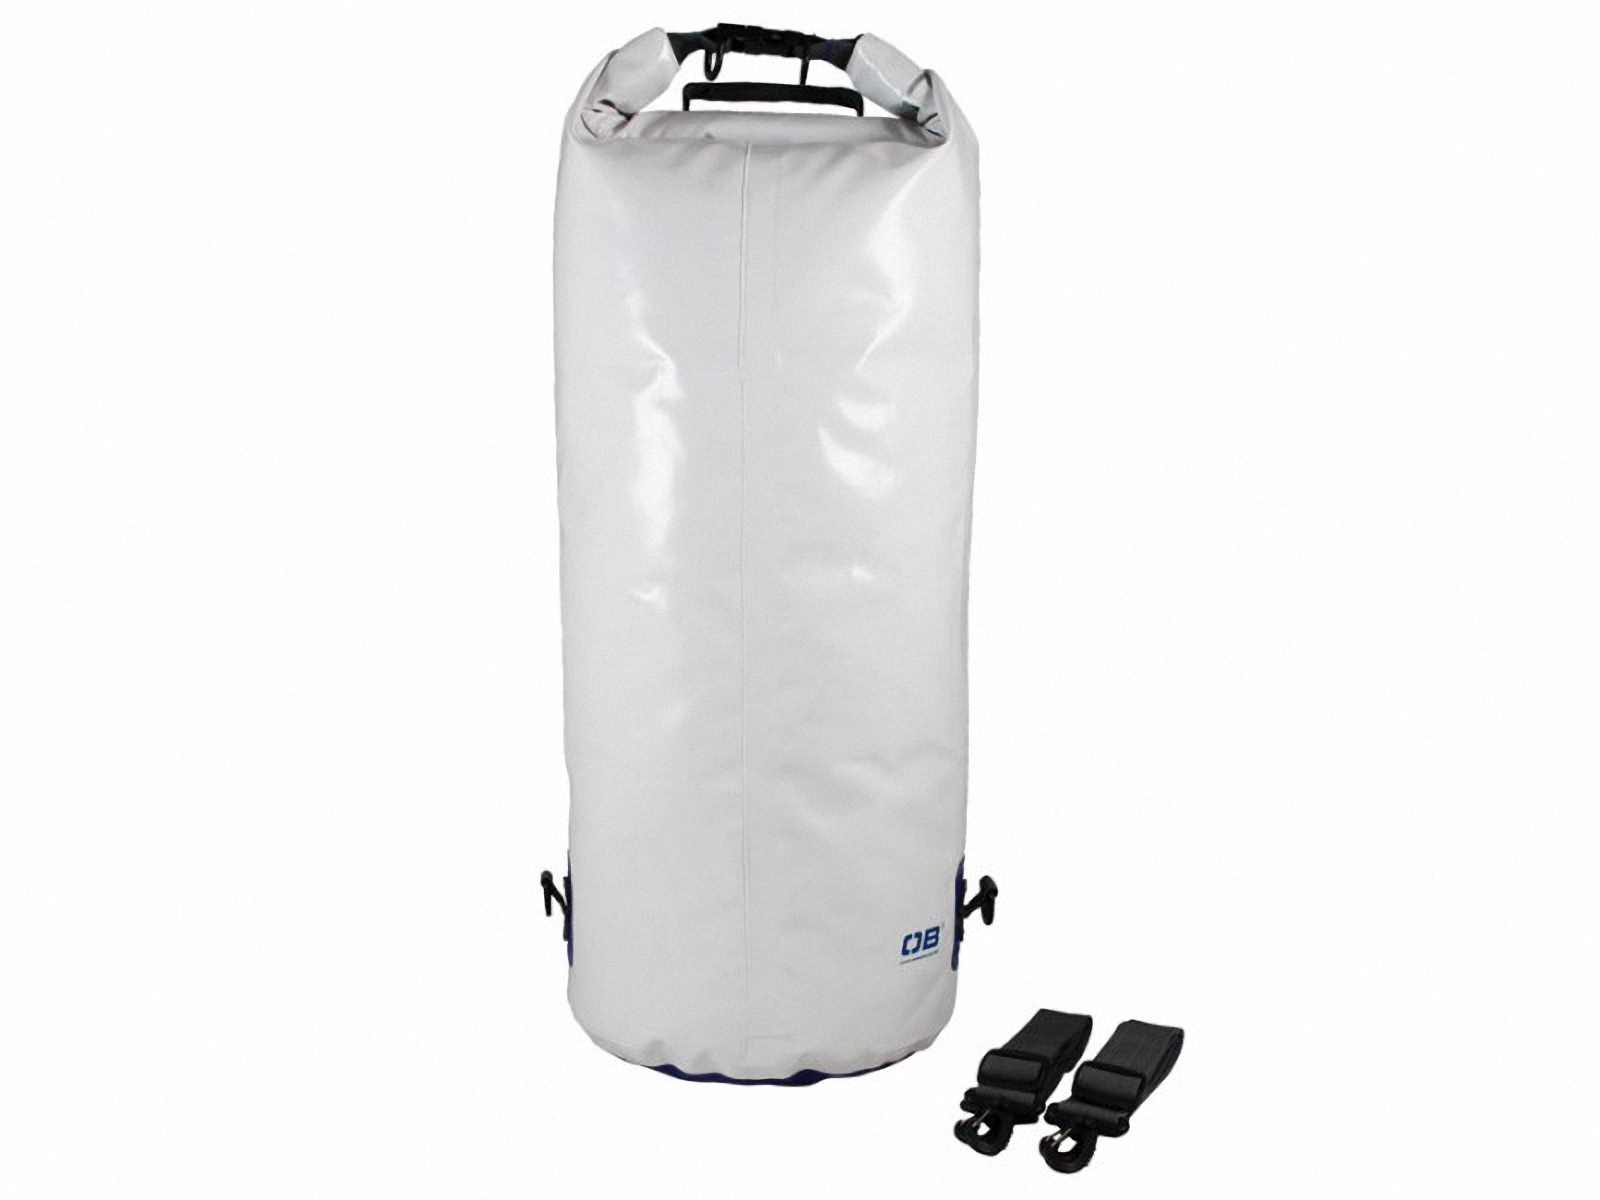 Водонепроницаемый рюкзак OverBoard OB1017WHT - Waterproof Boat Master Dry Tube - 40 Litres. Фото 1